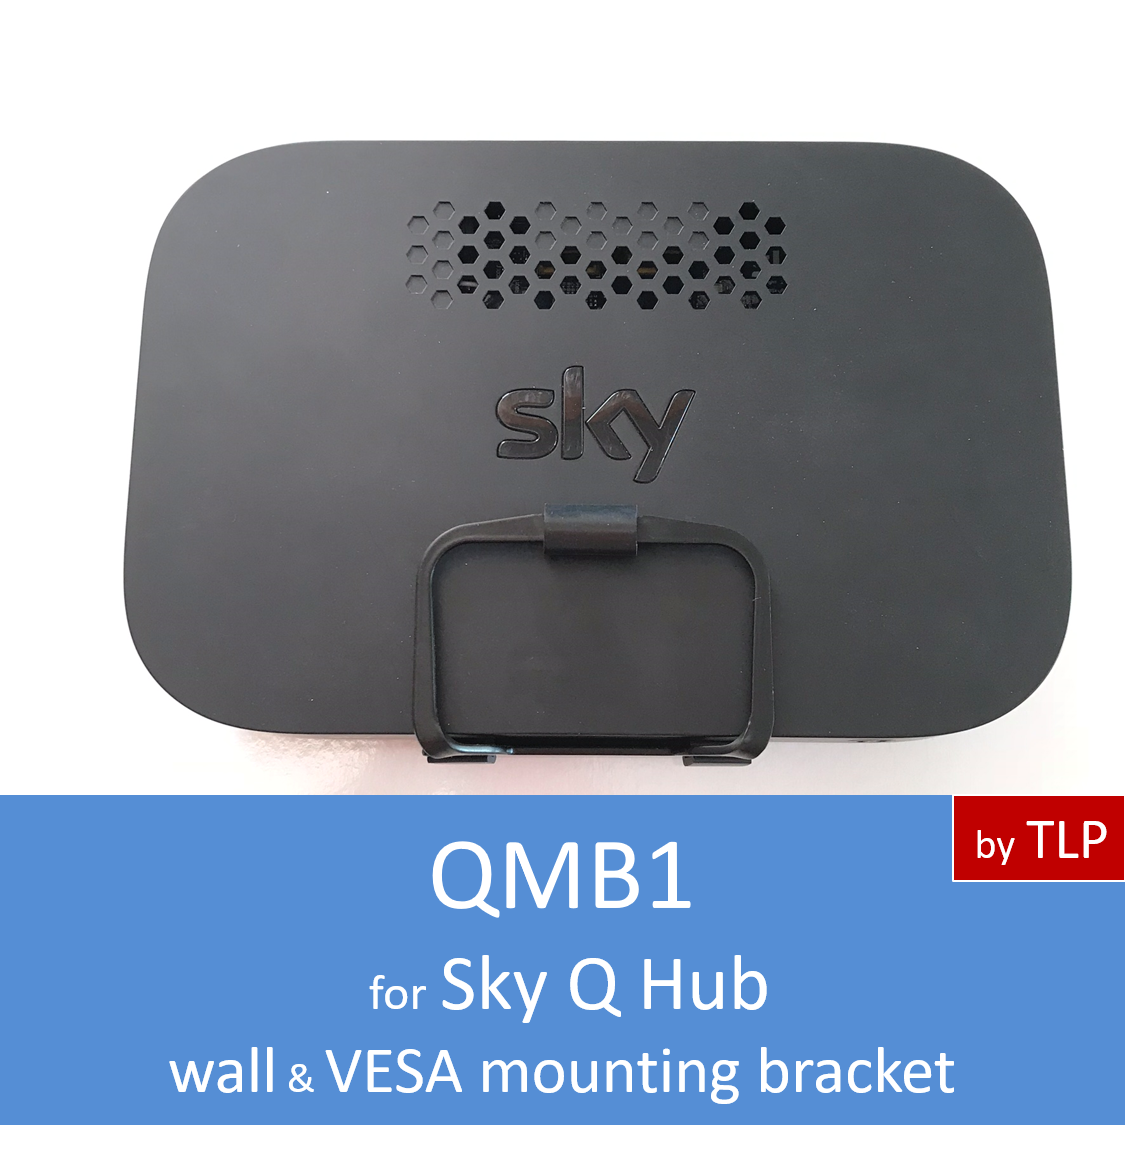 http://triplelinkproducts.co.uk/wp-content/uploads/2018/07/QMB1-for-Sky-Q-Hub.png